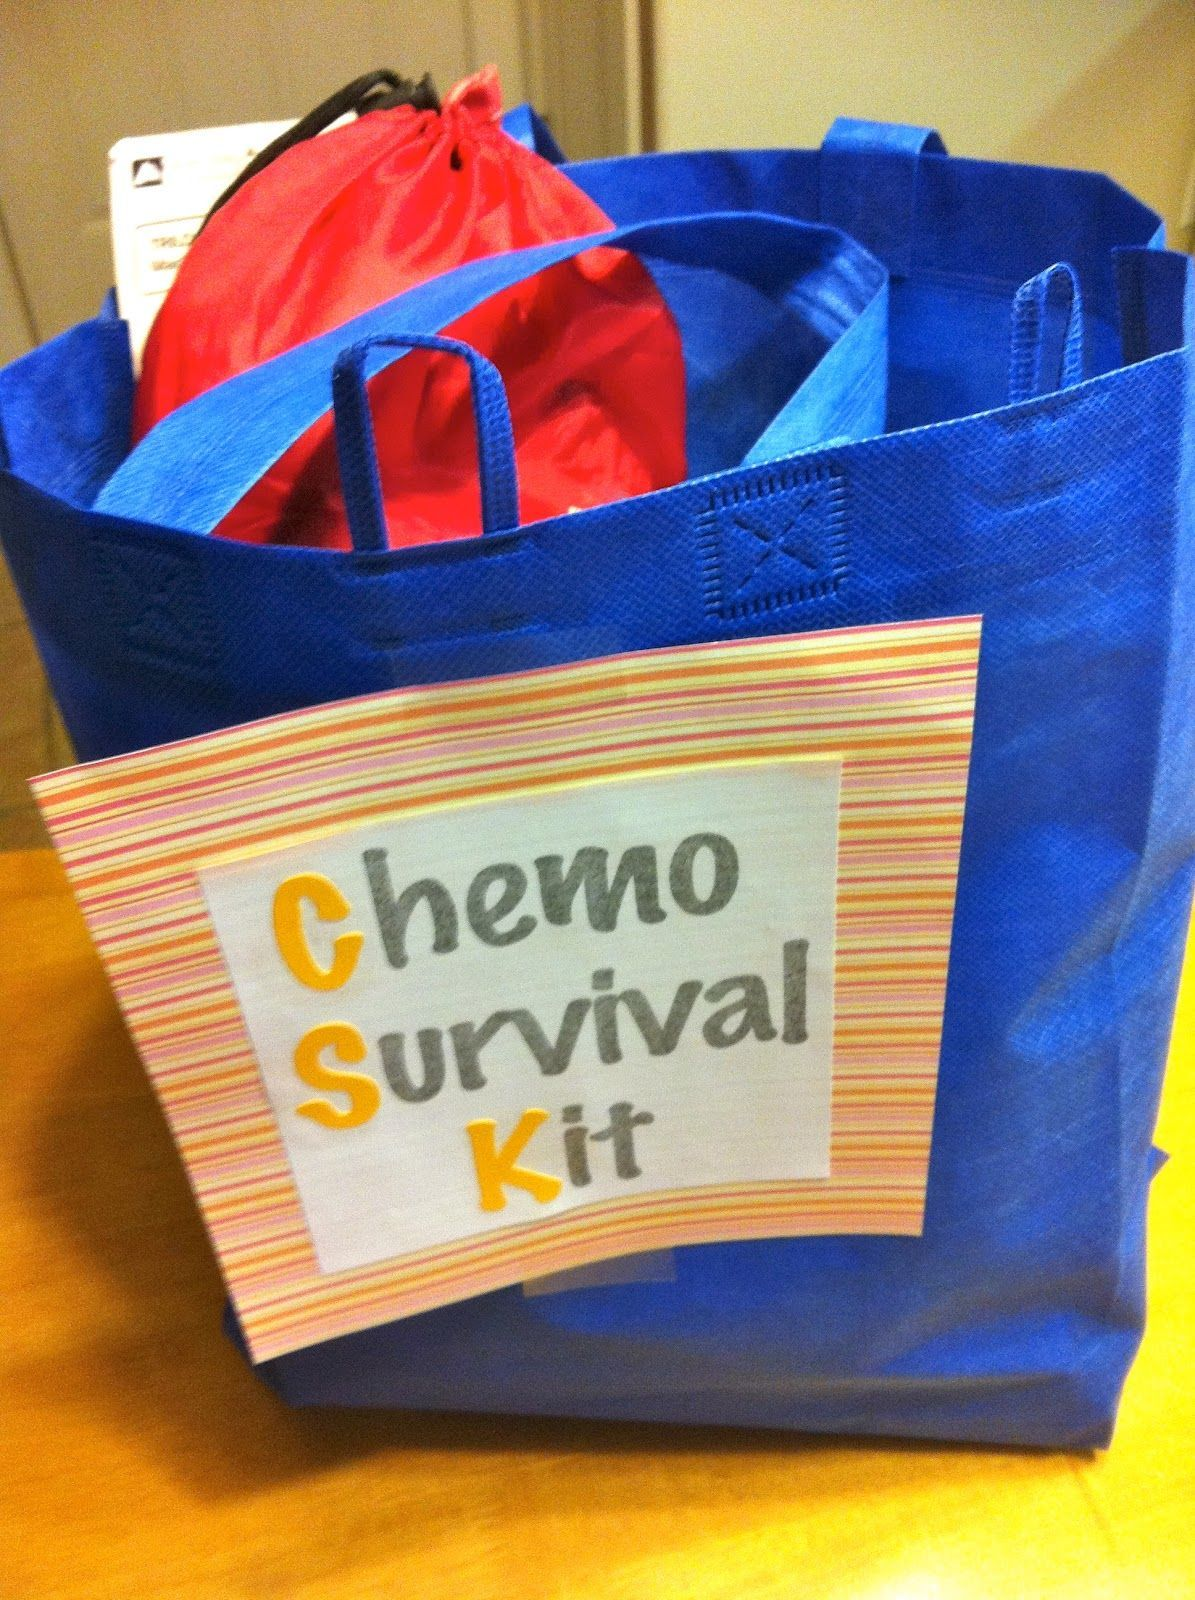 Chemo survival kit after having several loved ones and